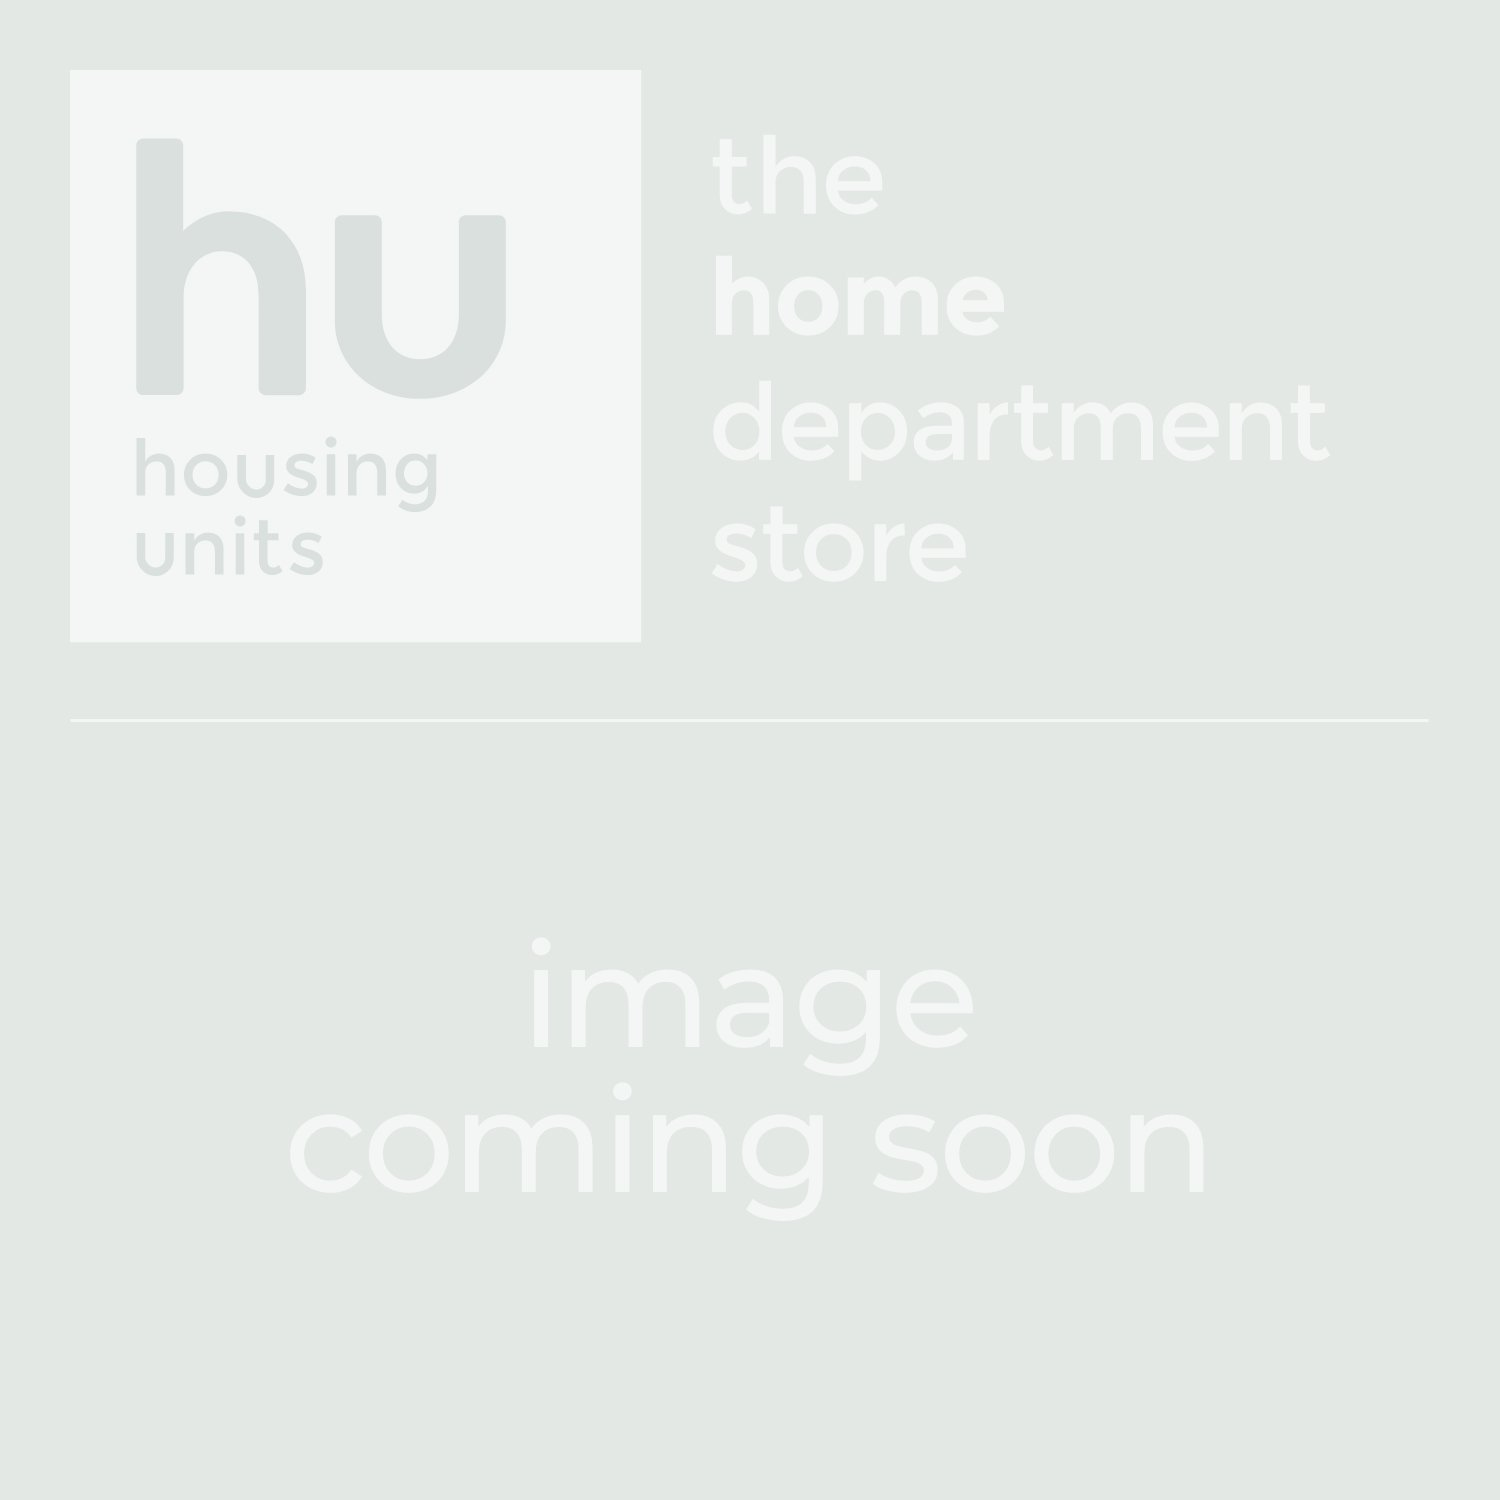 Gold and Blue Abstract Painting - Lifestyle | Housing Units